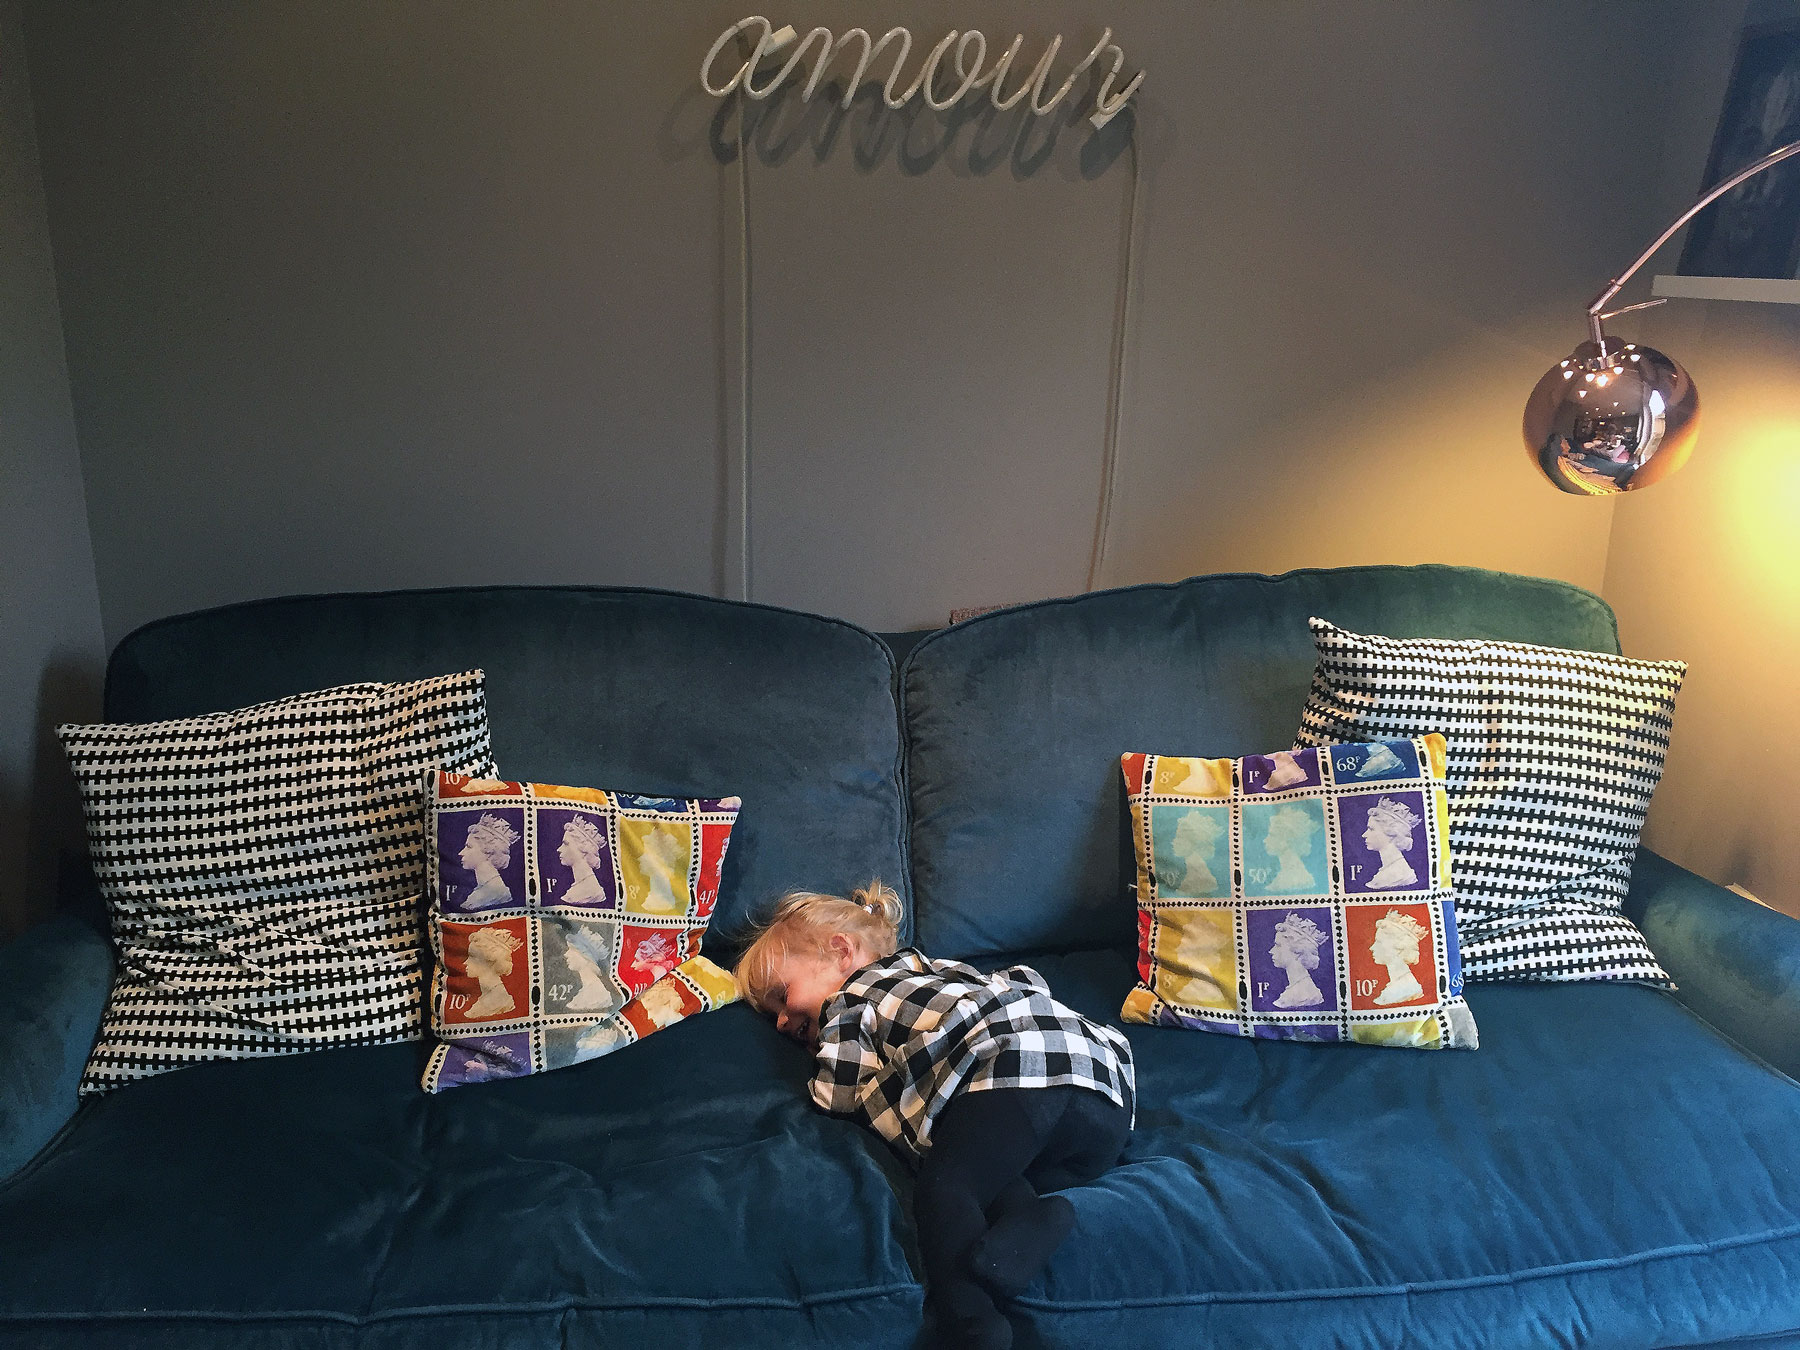 STELLA 'BEHAVING' DURING THE STYLE AT HOME PHOTOSHOOT